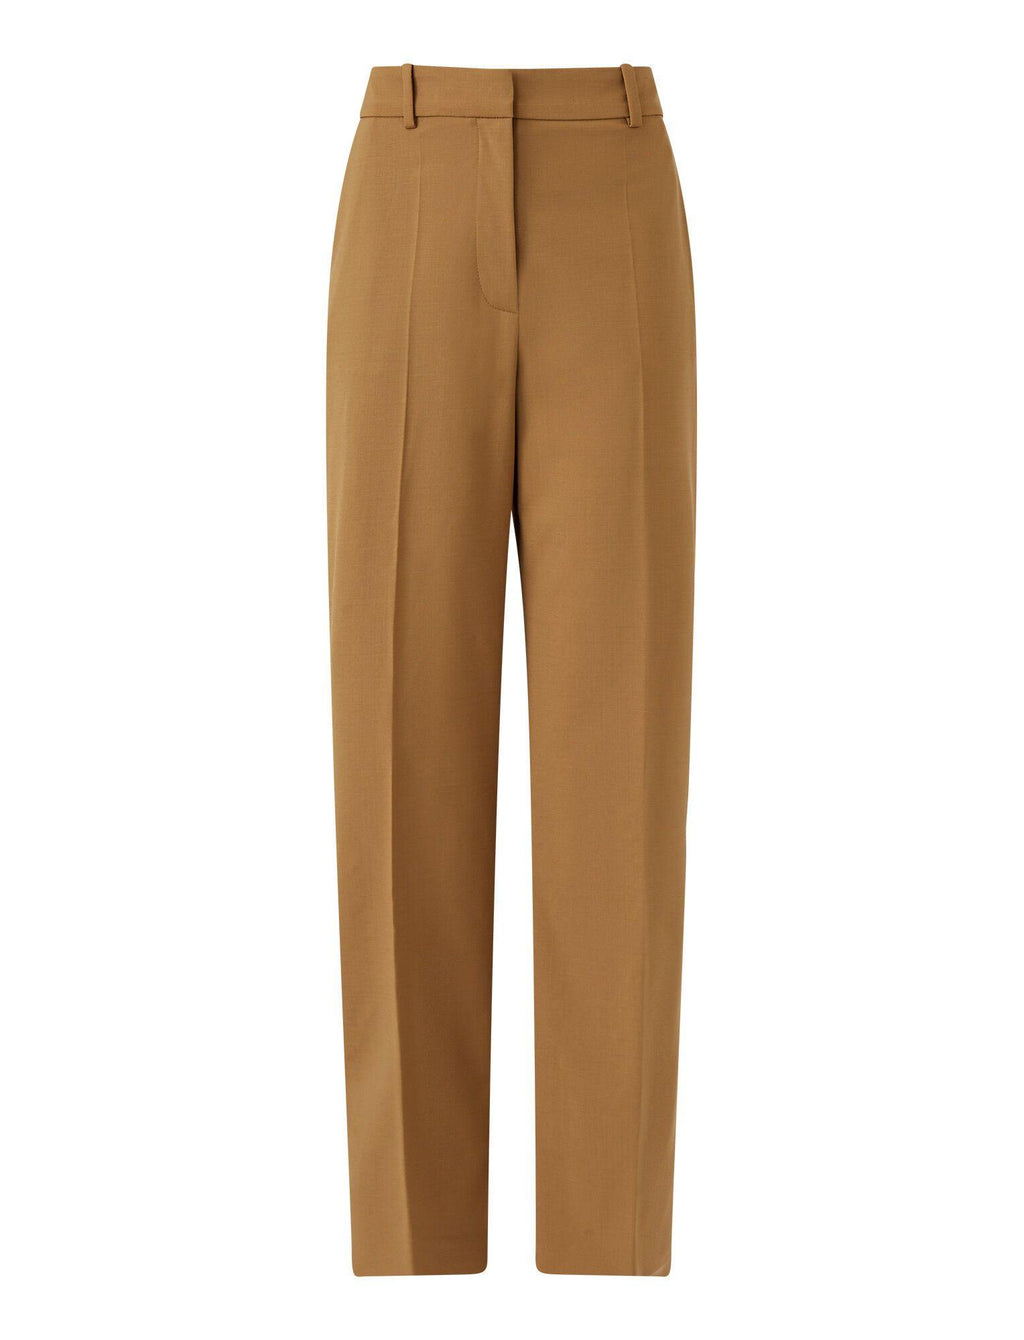 Coleman Light Wool Suiting Trousers in Beige